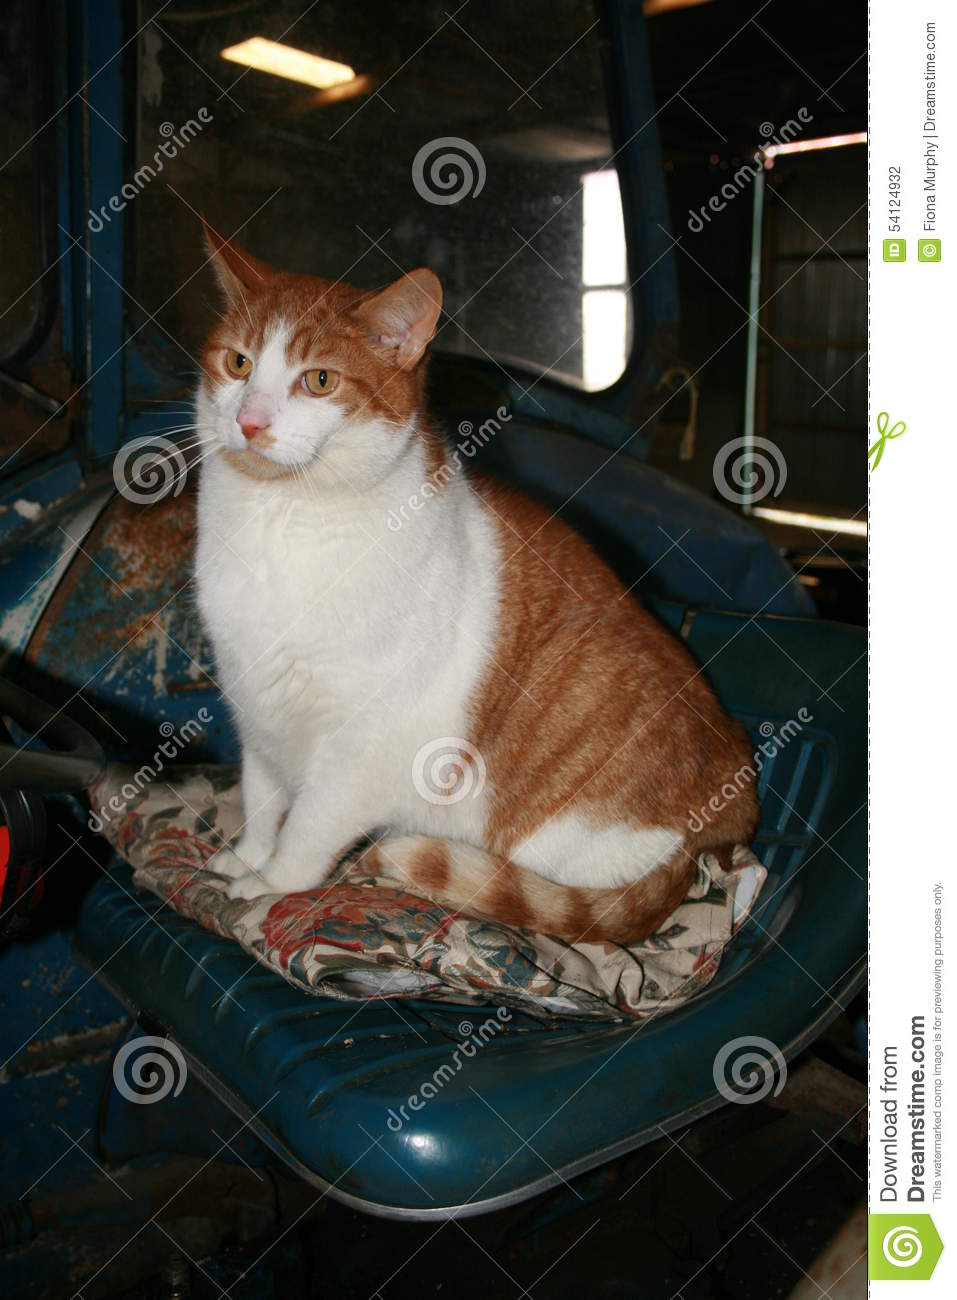 Old Time Tractor Seats : Ginger cat on an old tractor seat